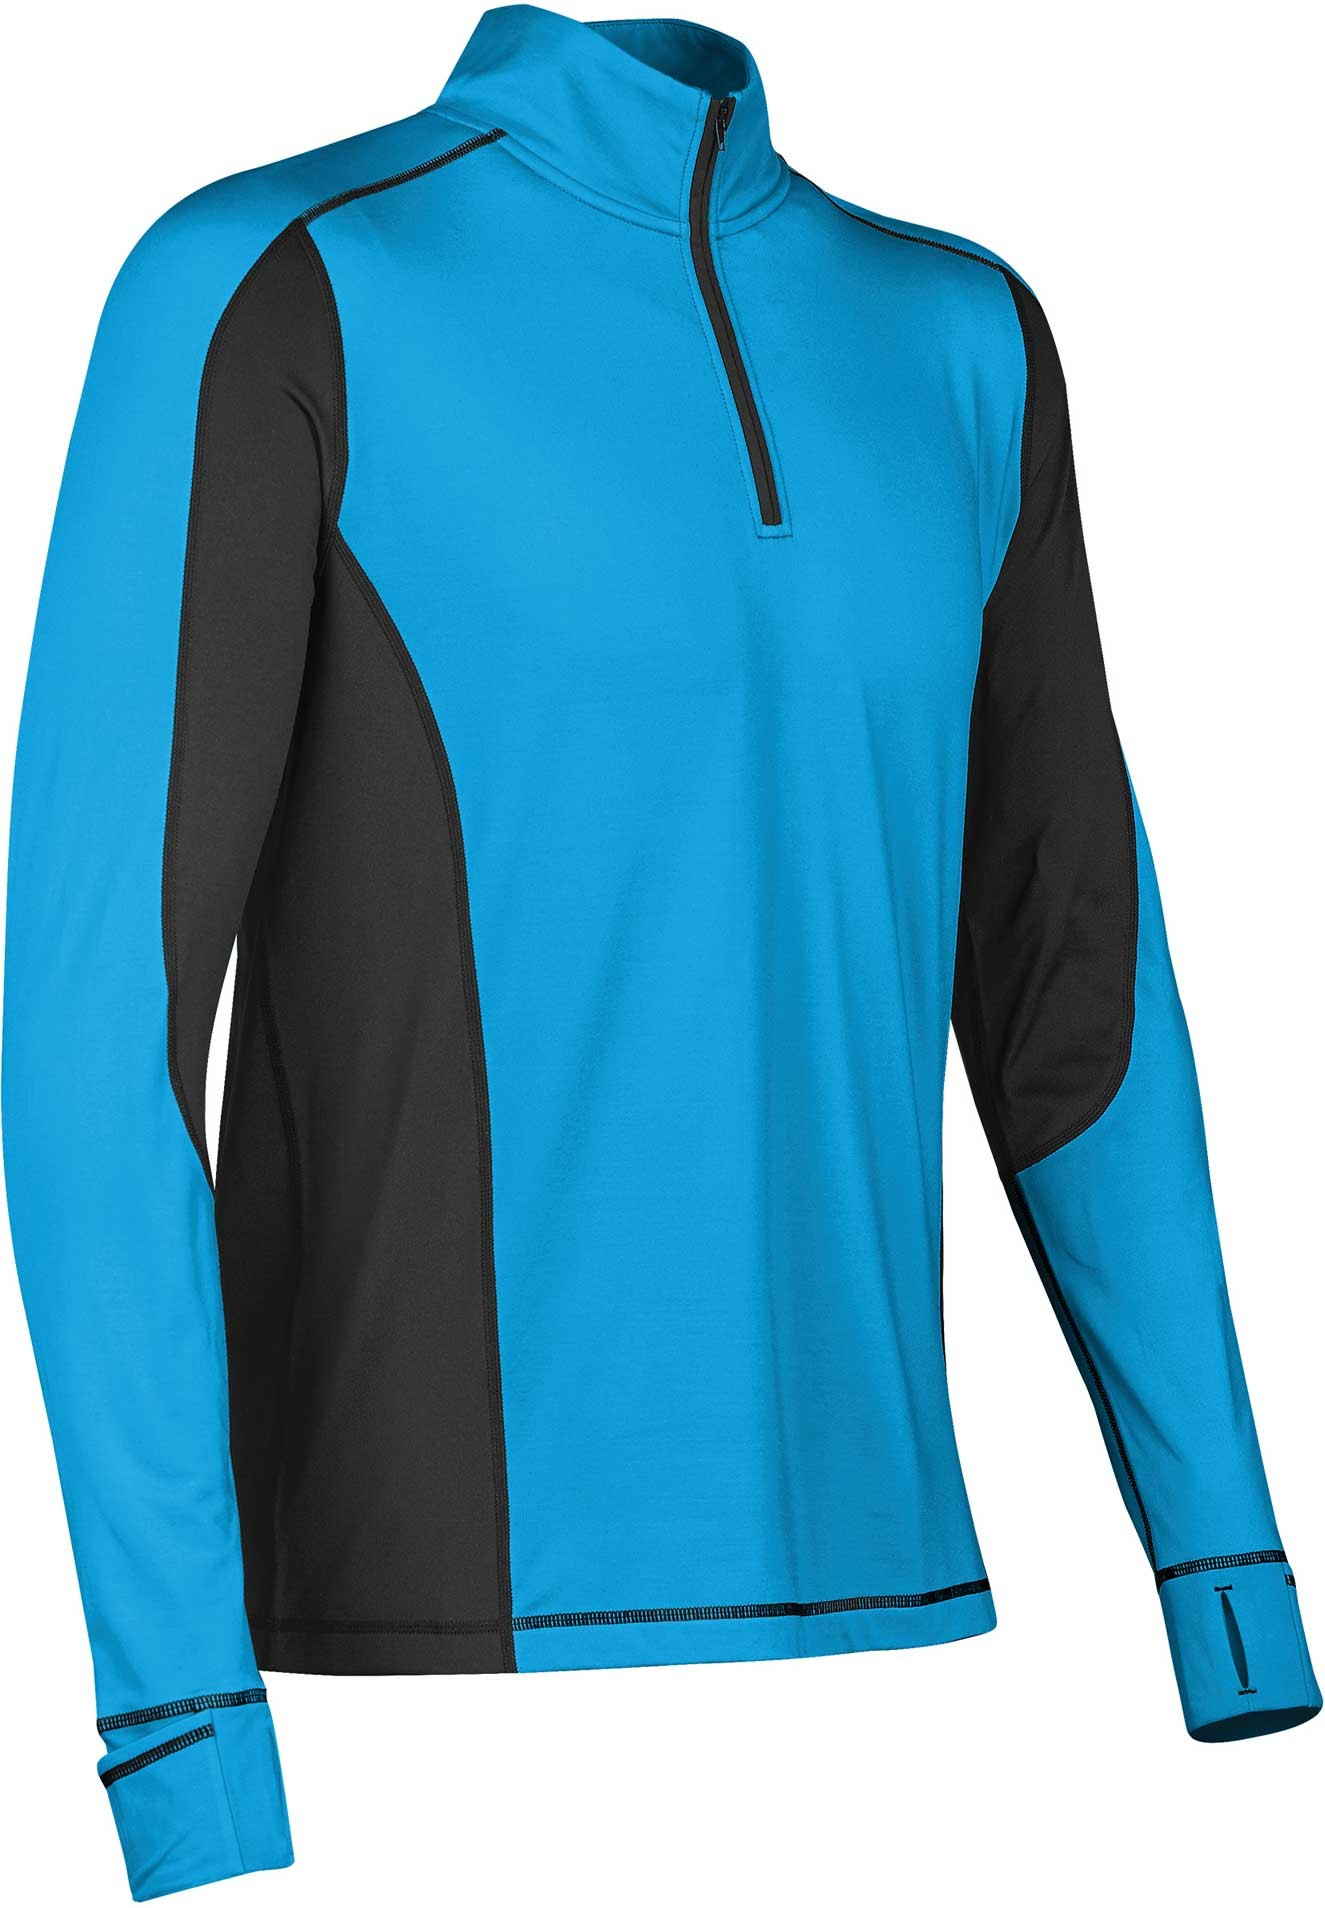 Stormtech Men's Lightweight 1/4 Zip